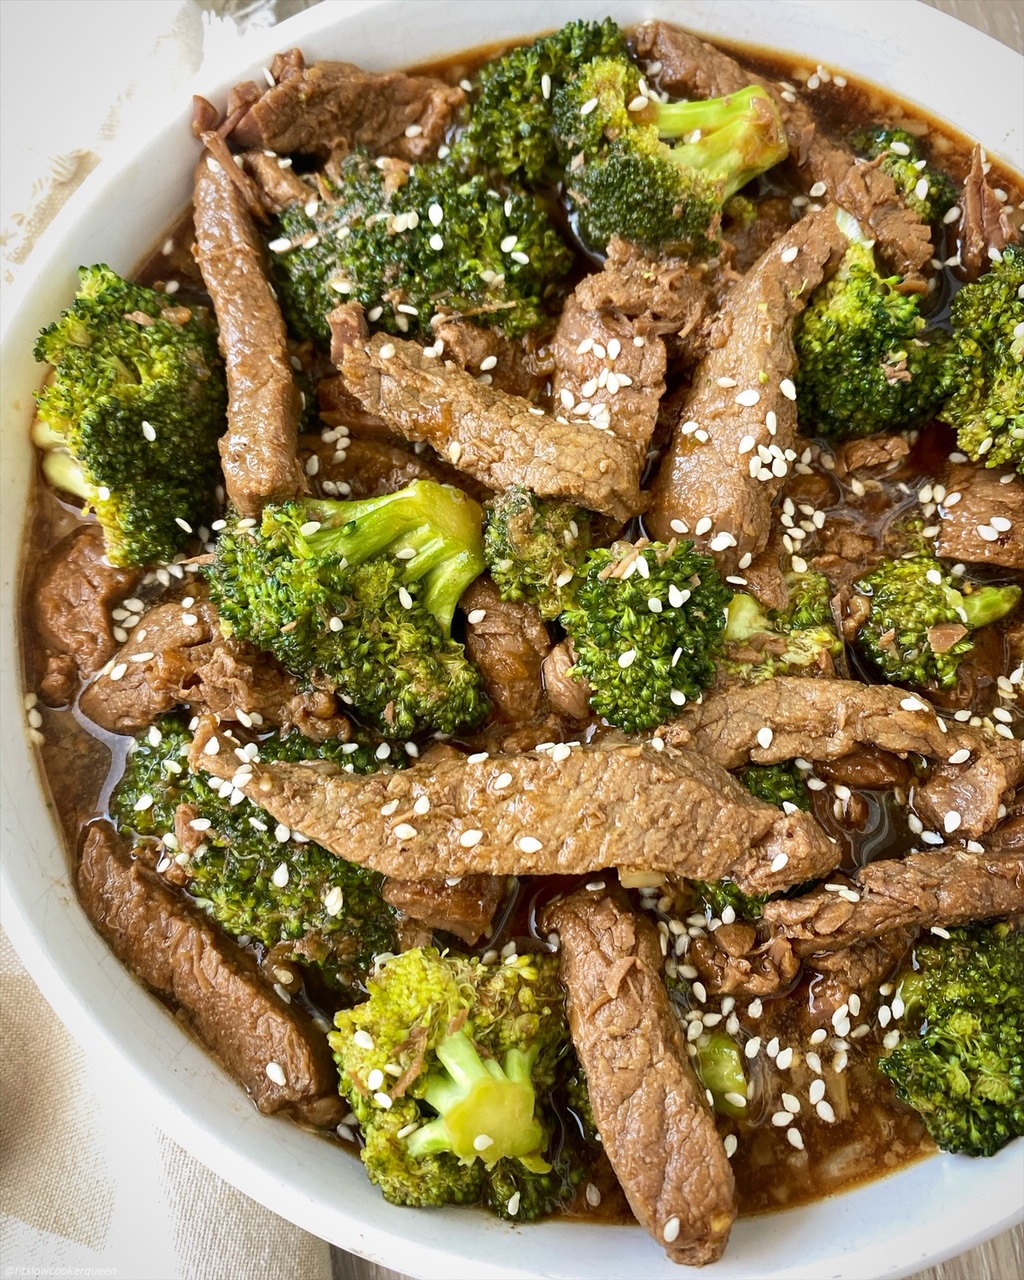 close up, side view of cooked beef & broccoli in a bowl